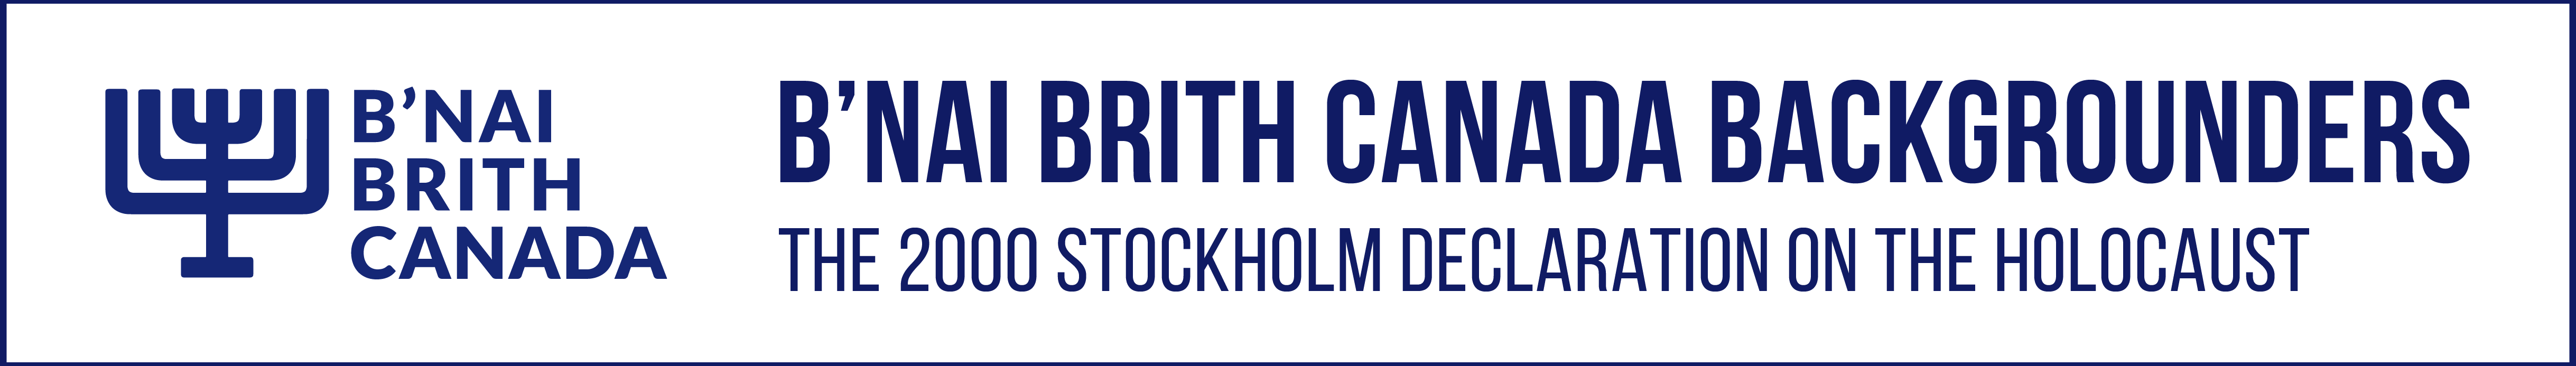 B'nai Brith Backgrounders: The 2000 Stockholm Declaration on the Holocaust